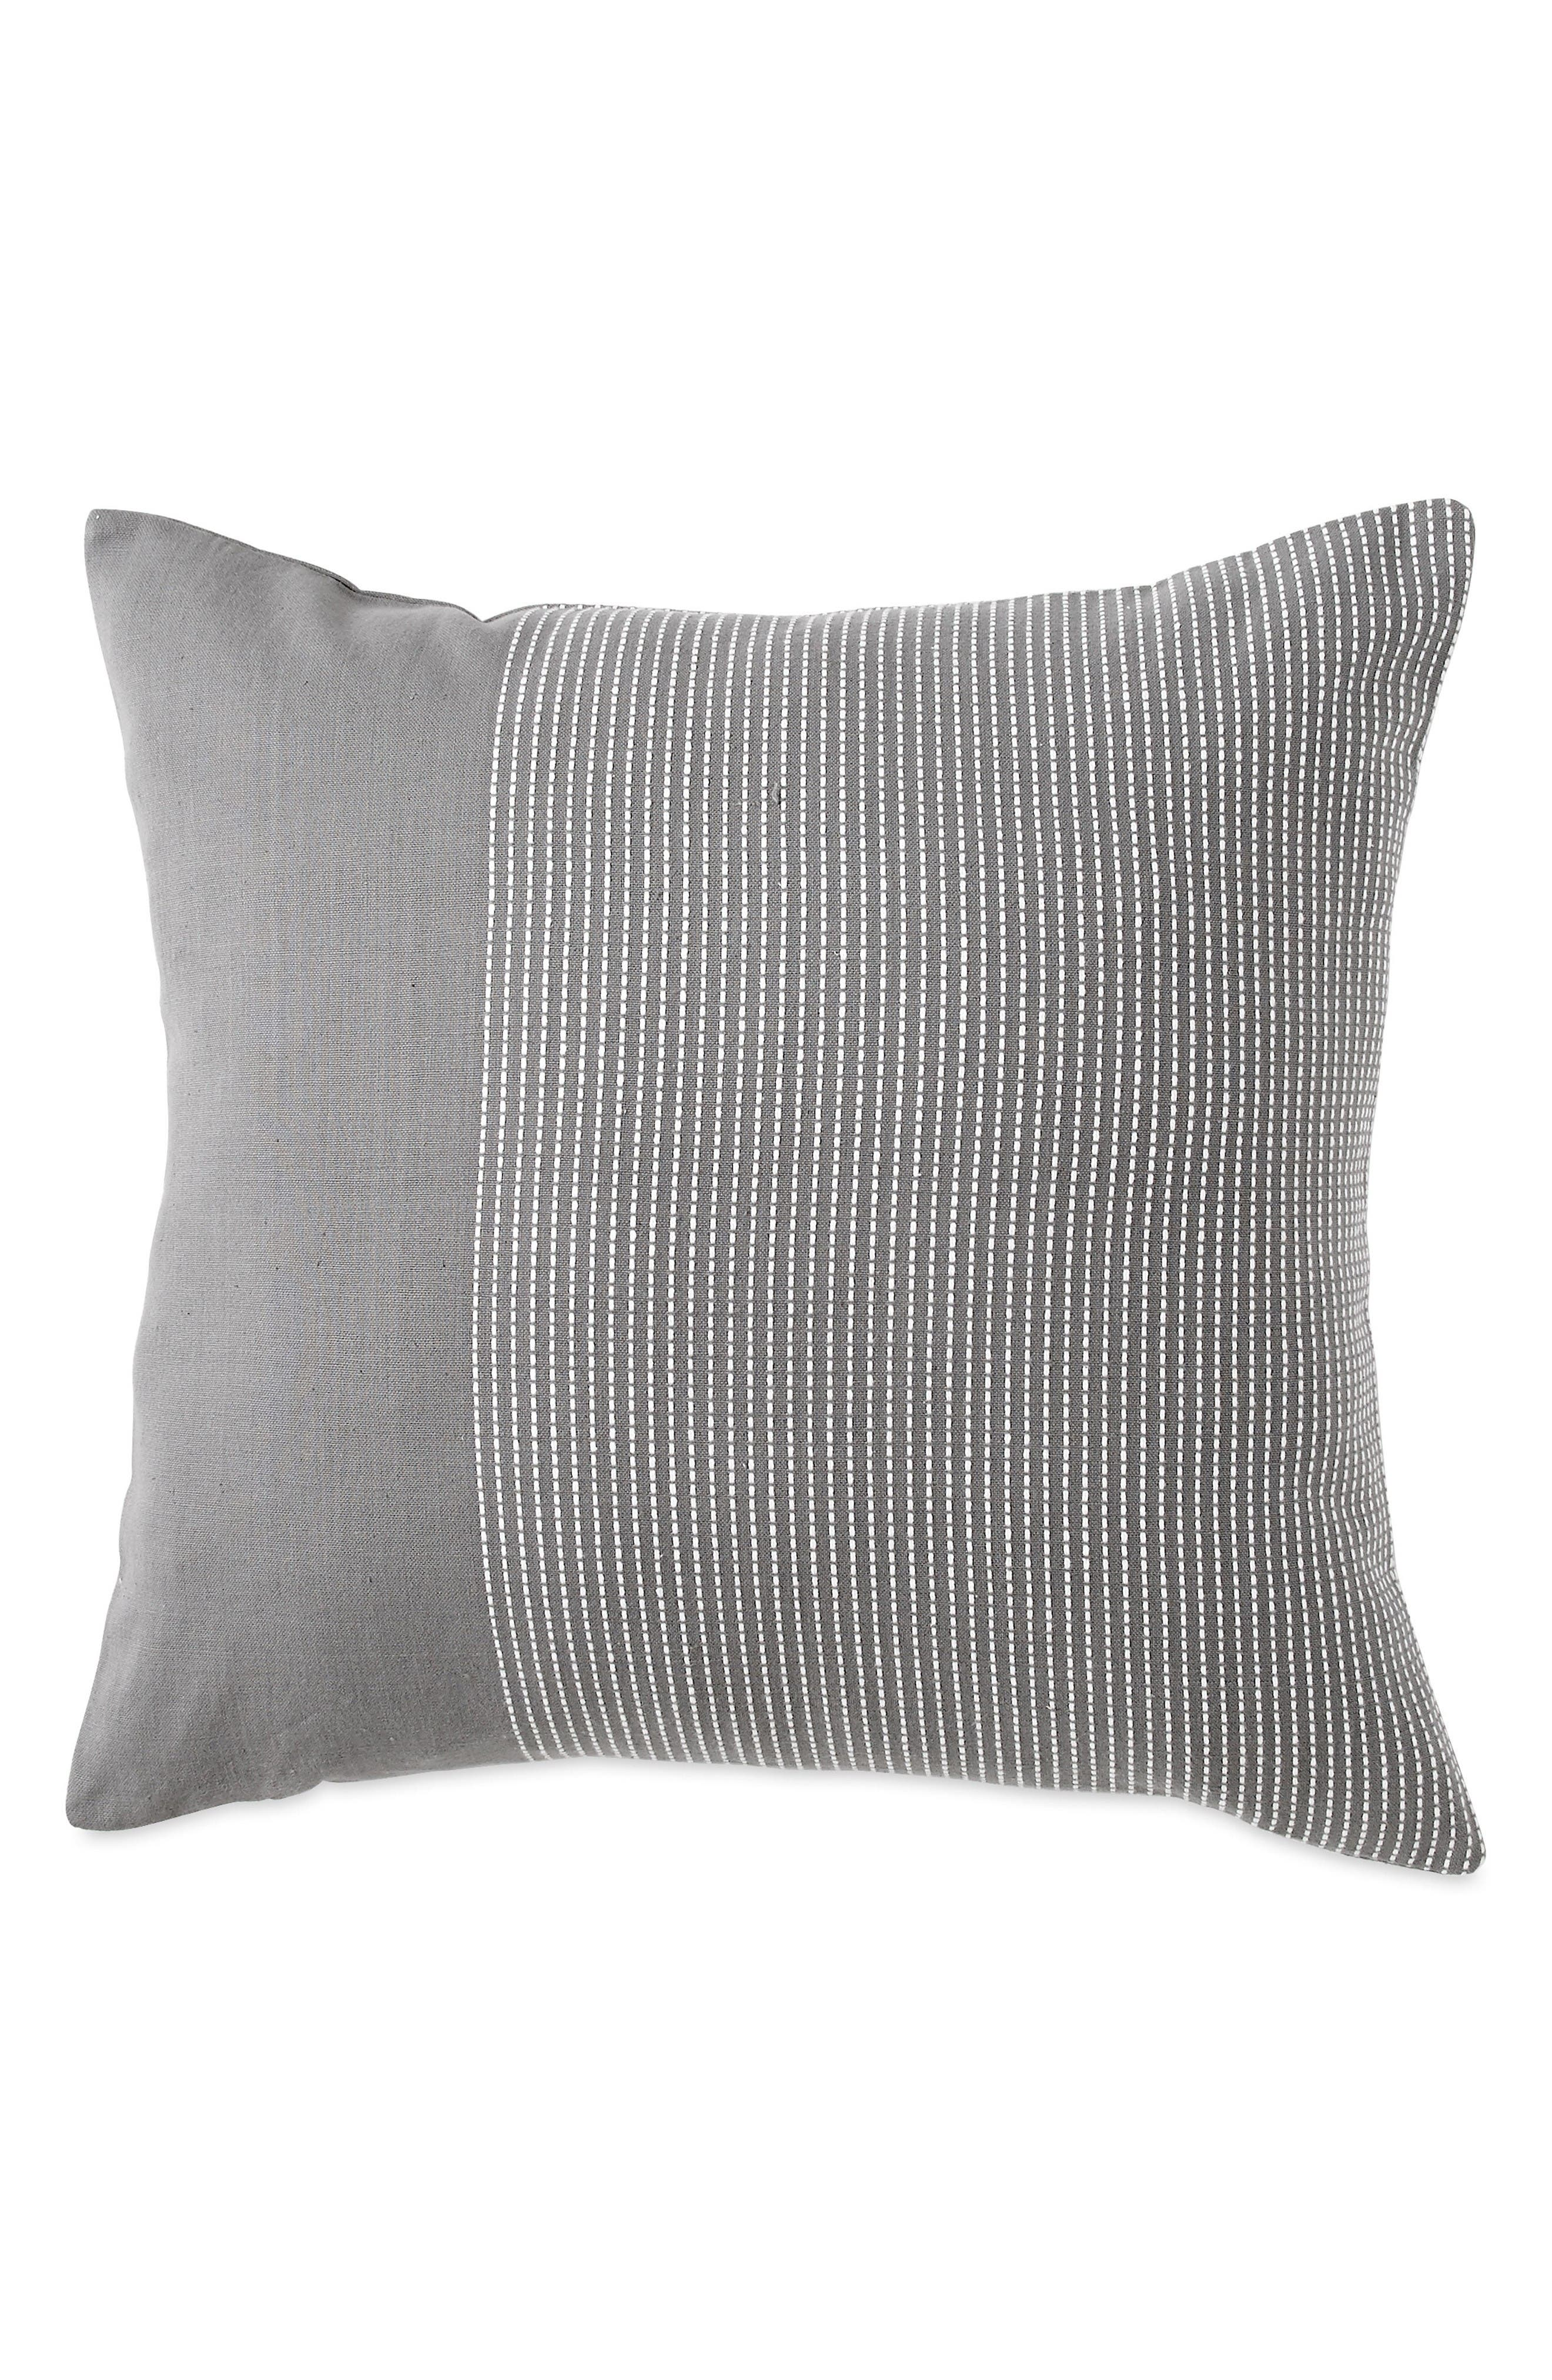 Stripe Accent Pillow,                         Main,                         color, Grey